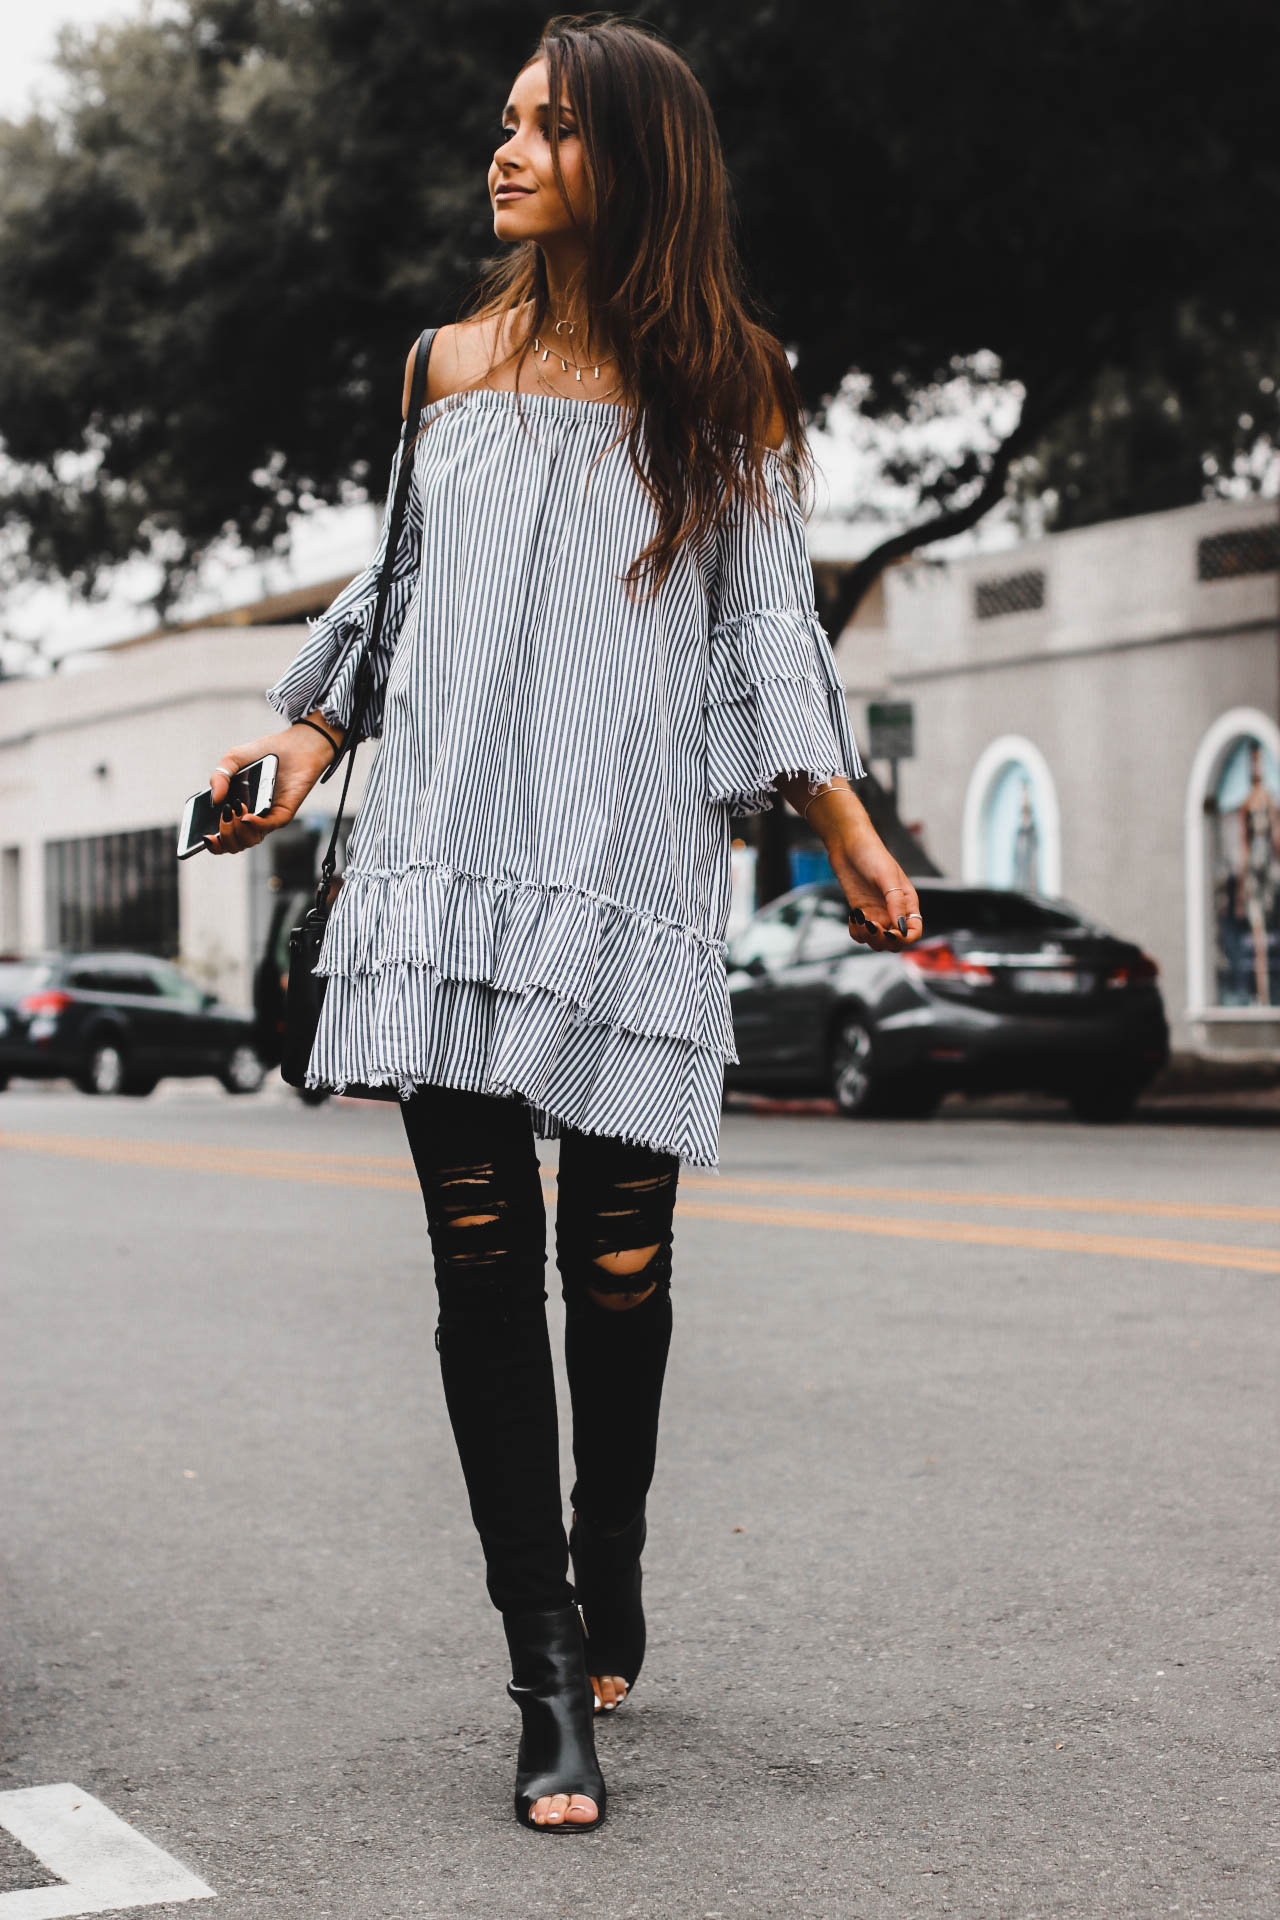 photo of jami alix wearing zara ruffle dress ootd street style